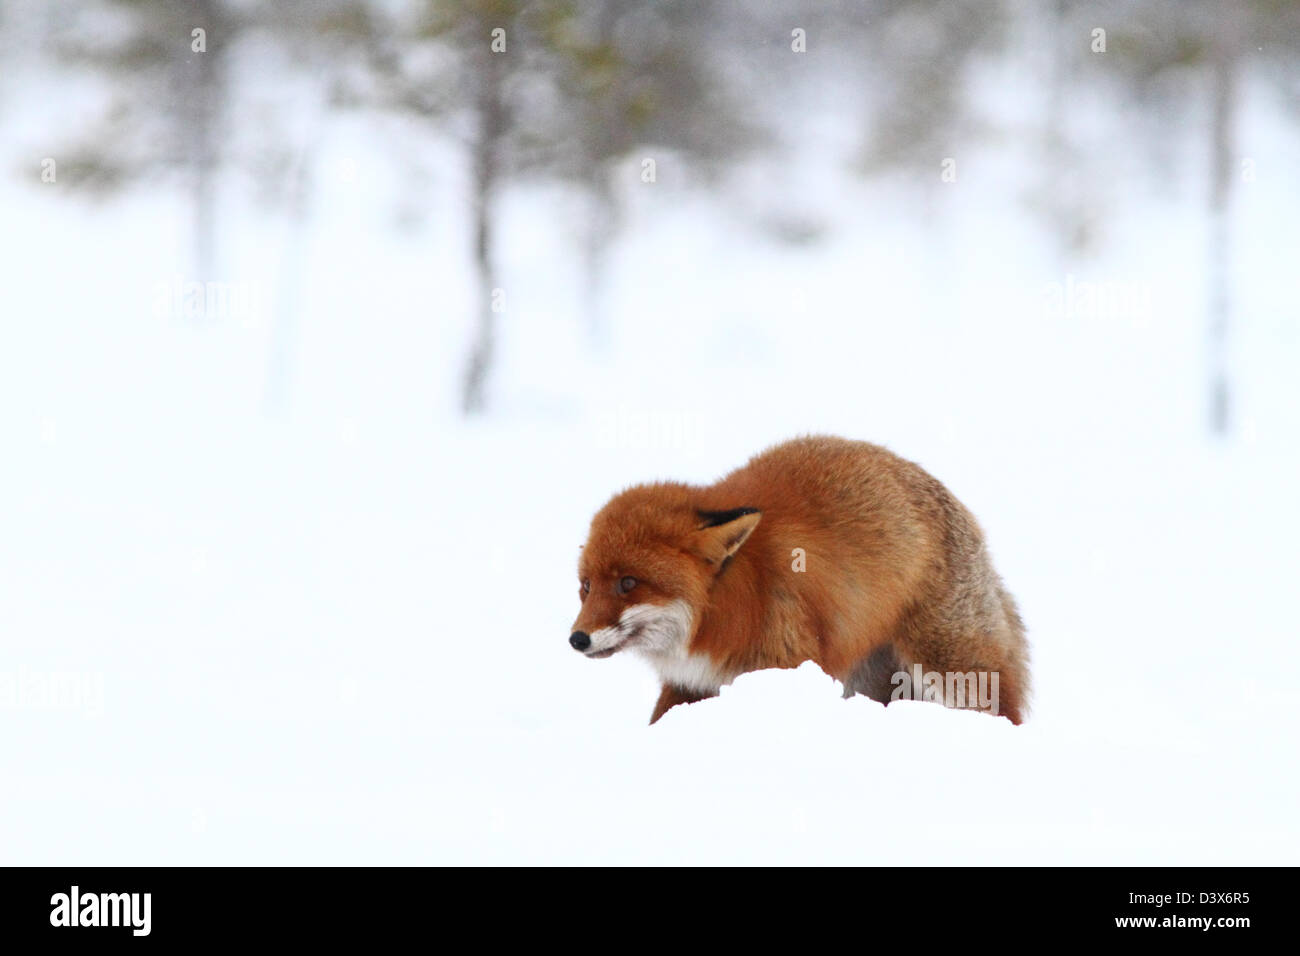 Red Fox (Vulpes vulpes) feeling unsafe. Photographed in Västerbotten, Sweden - Stock Image